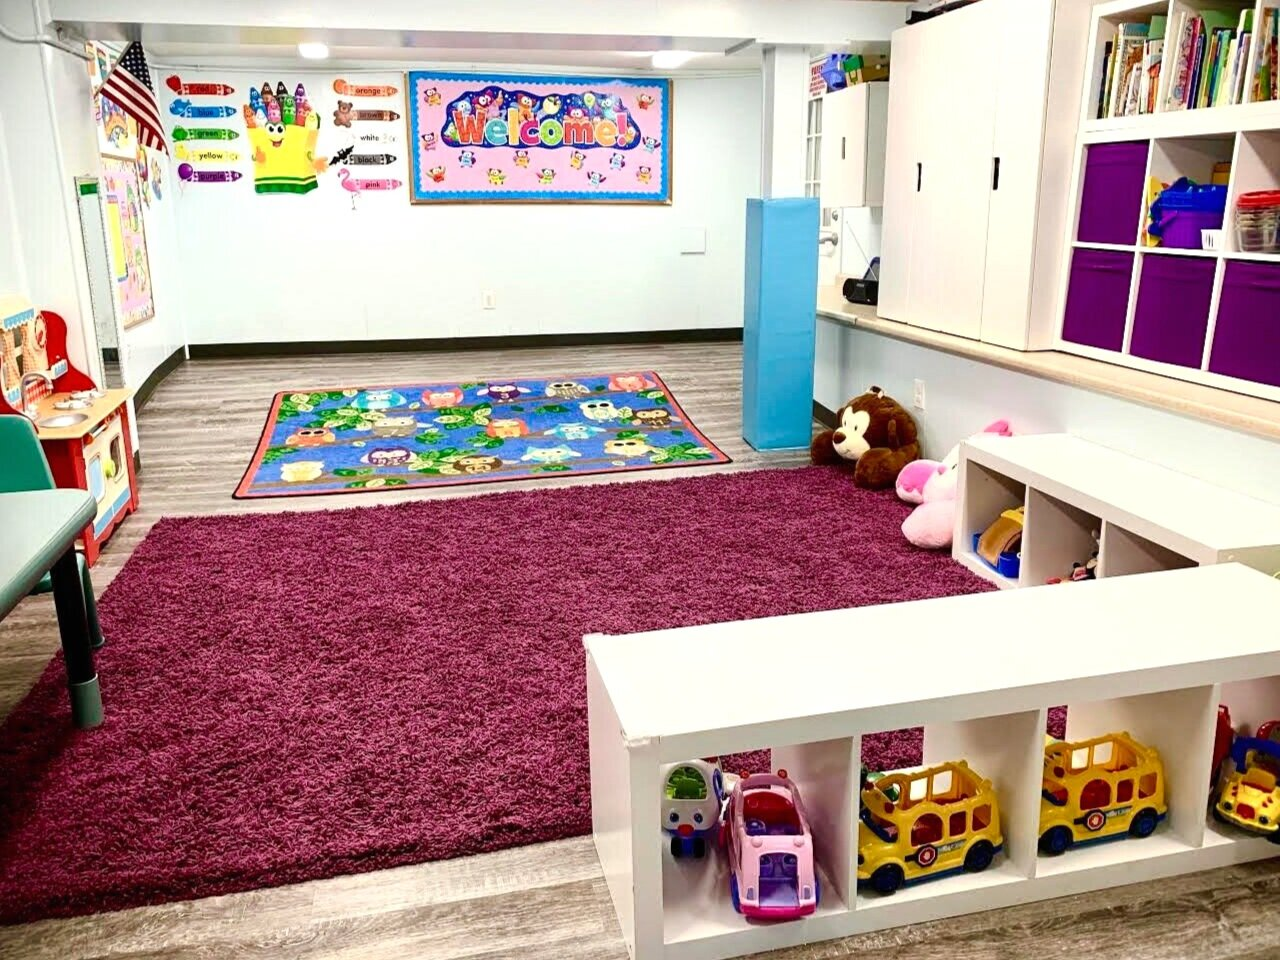 Young Toddlers classroom during our school sessions.